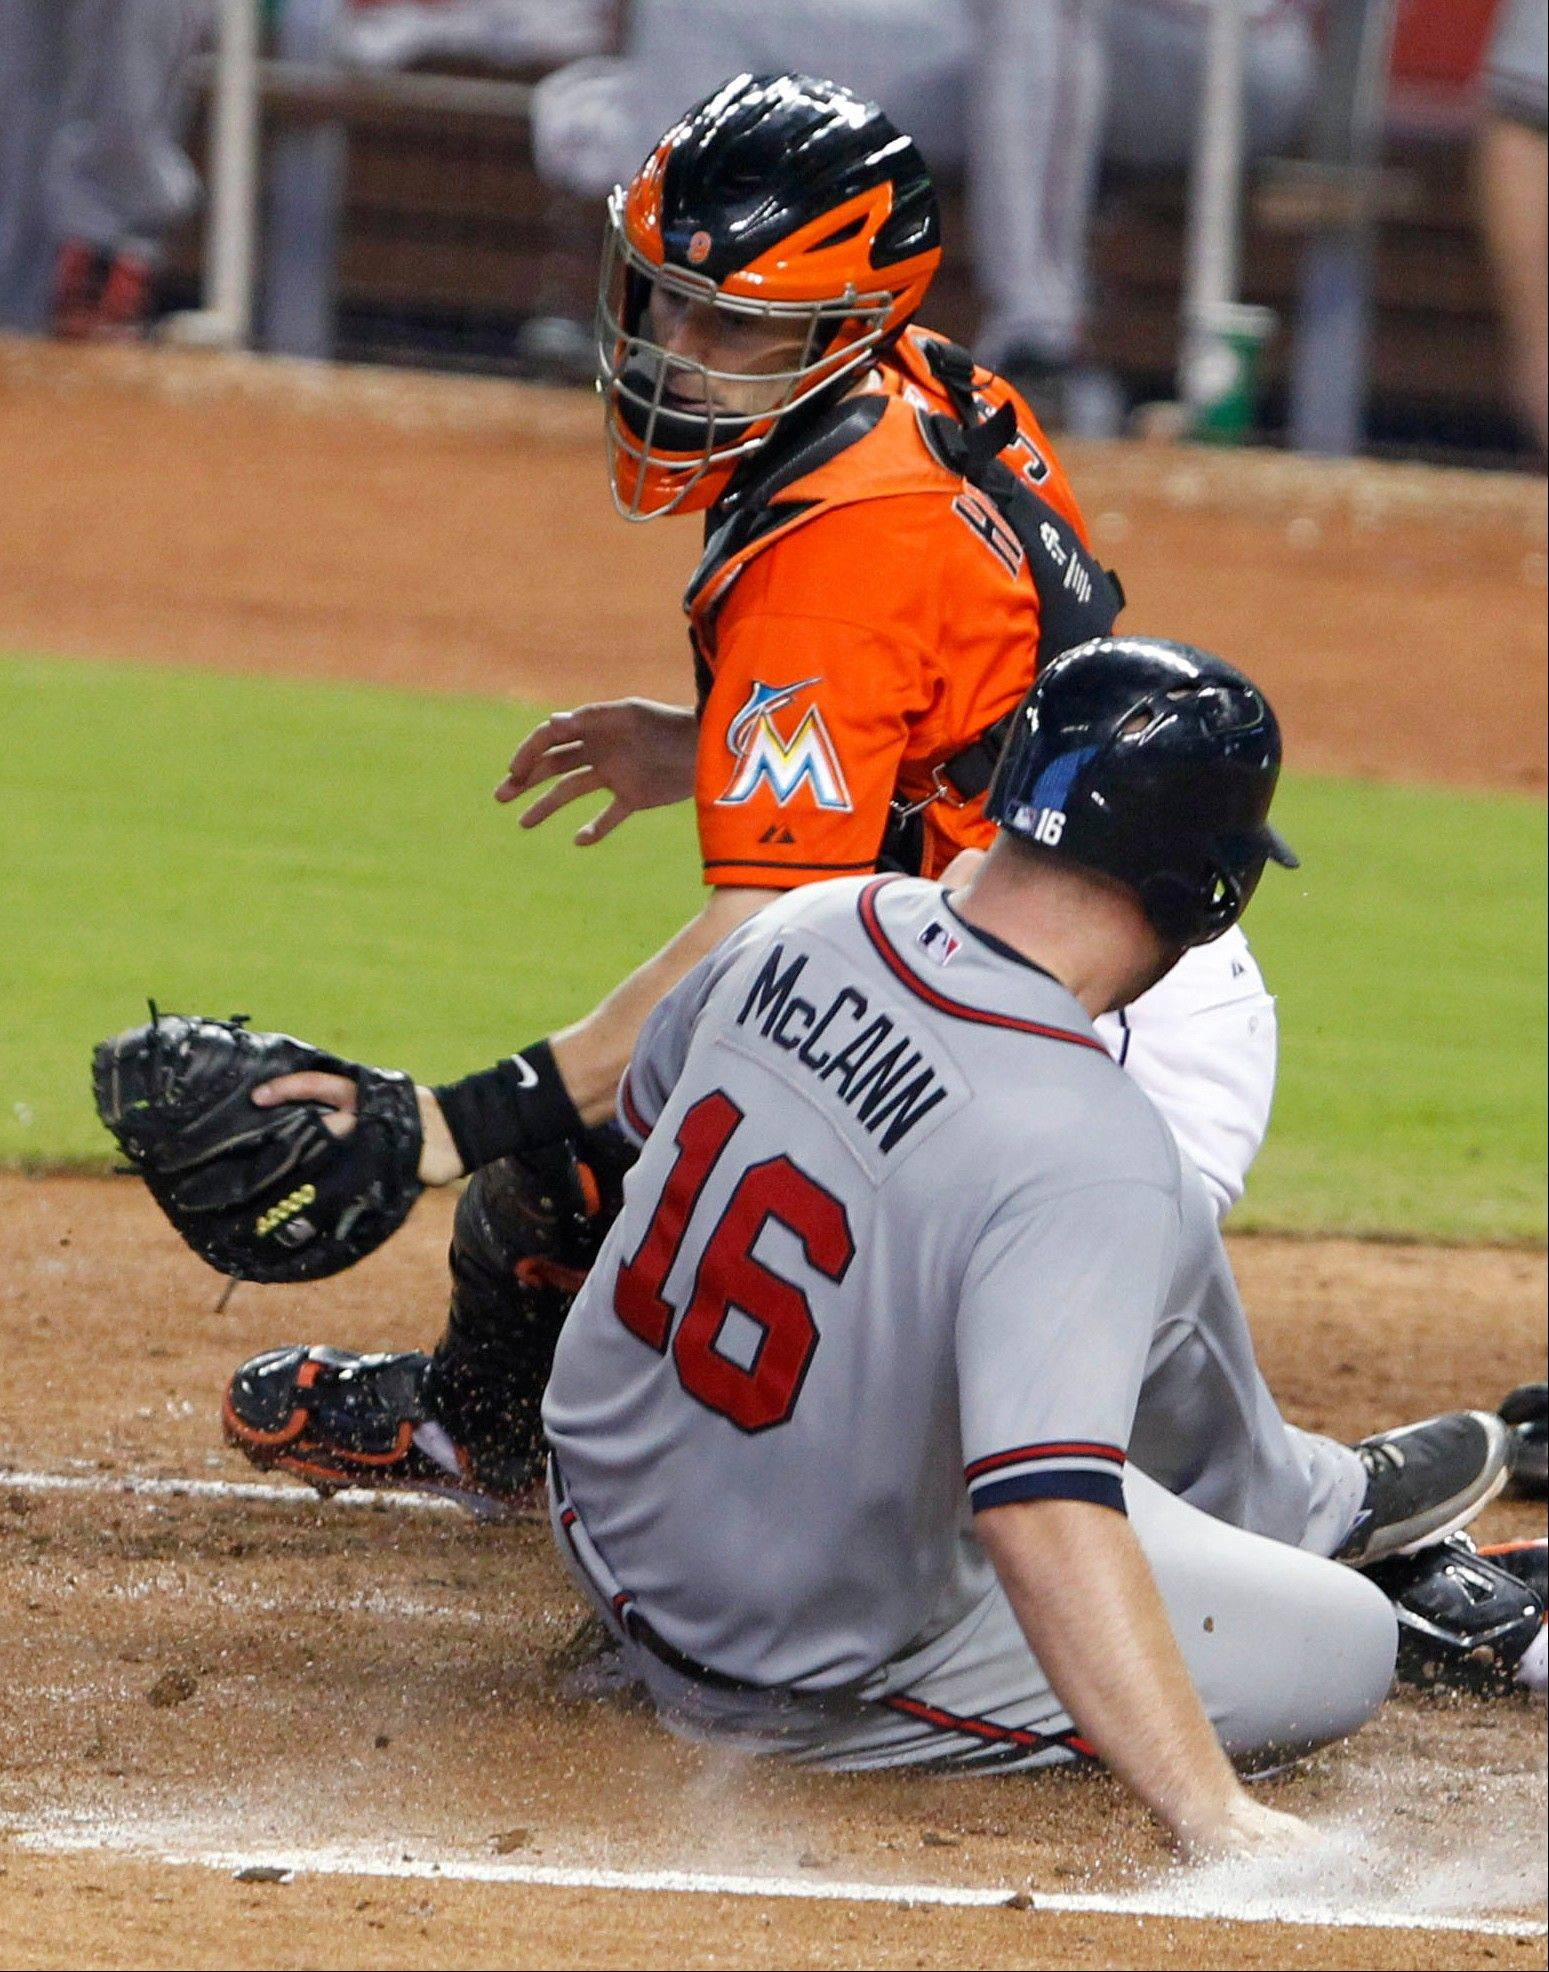 Atlanta Braves catcher Brian McCann scores as Miami Marlins catcher Brett Hayes attempts the tag Wednesday during the sixth inning in Miami. The Braves defeated the Marlins 7-1.